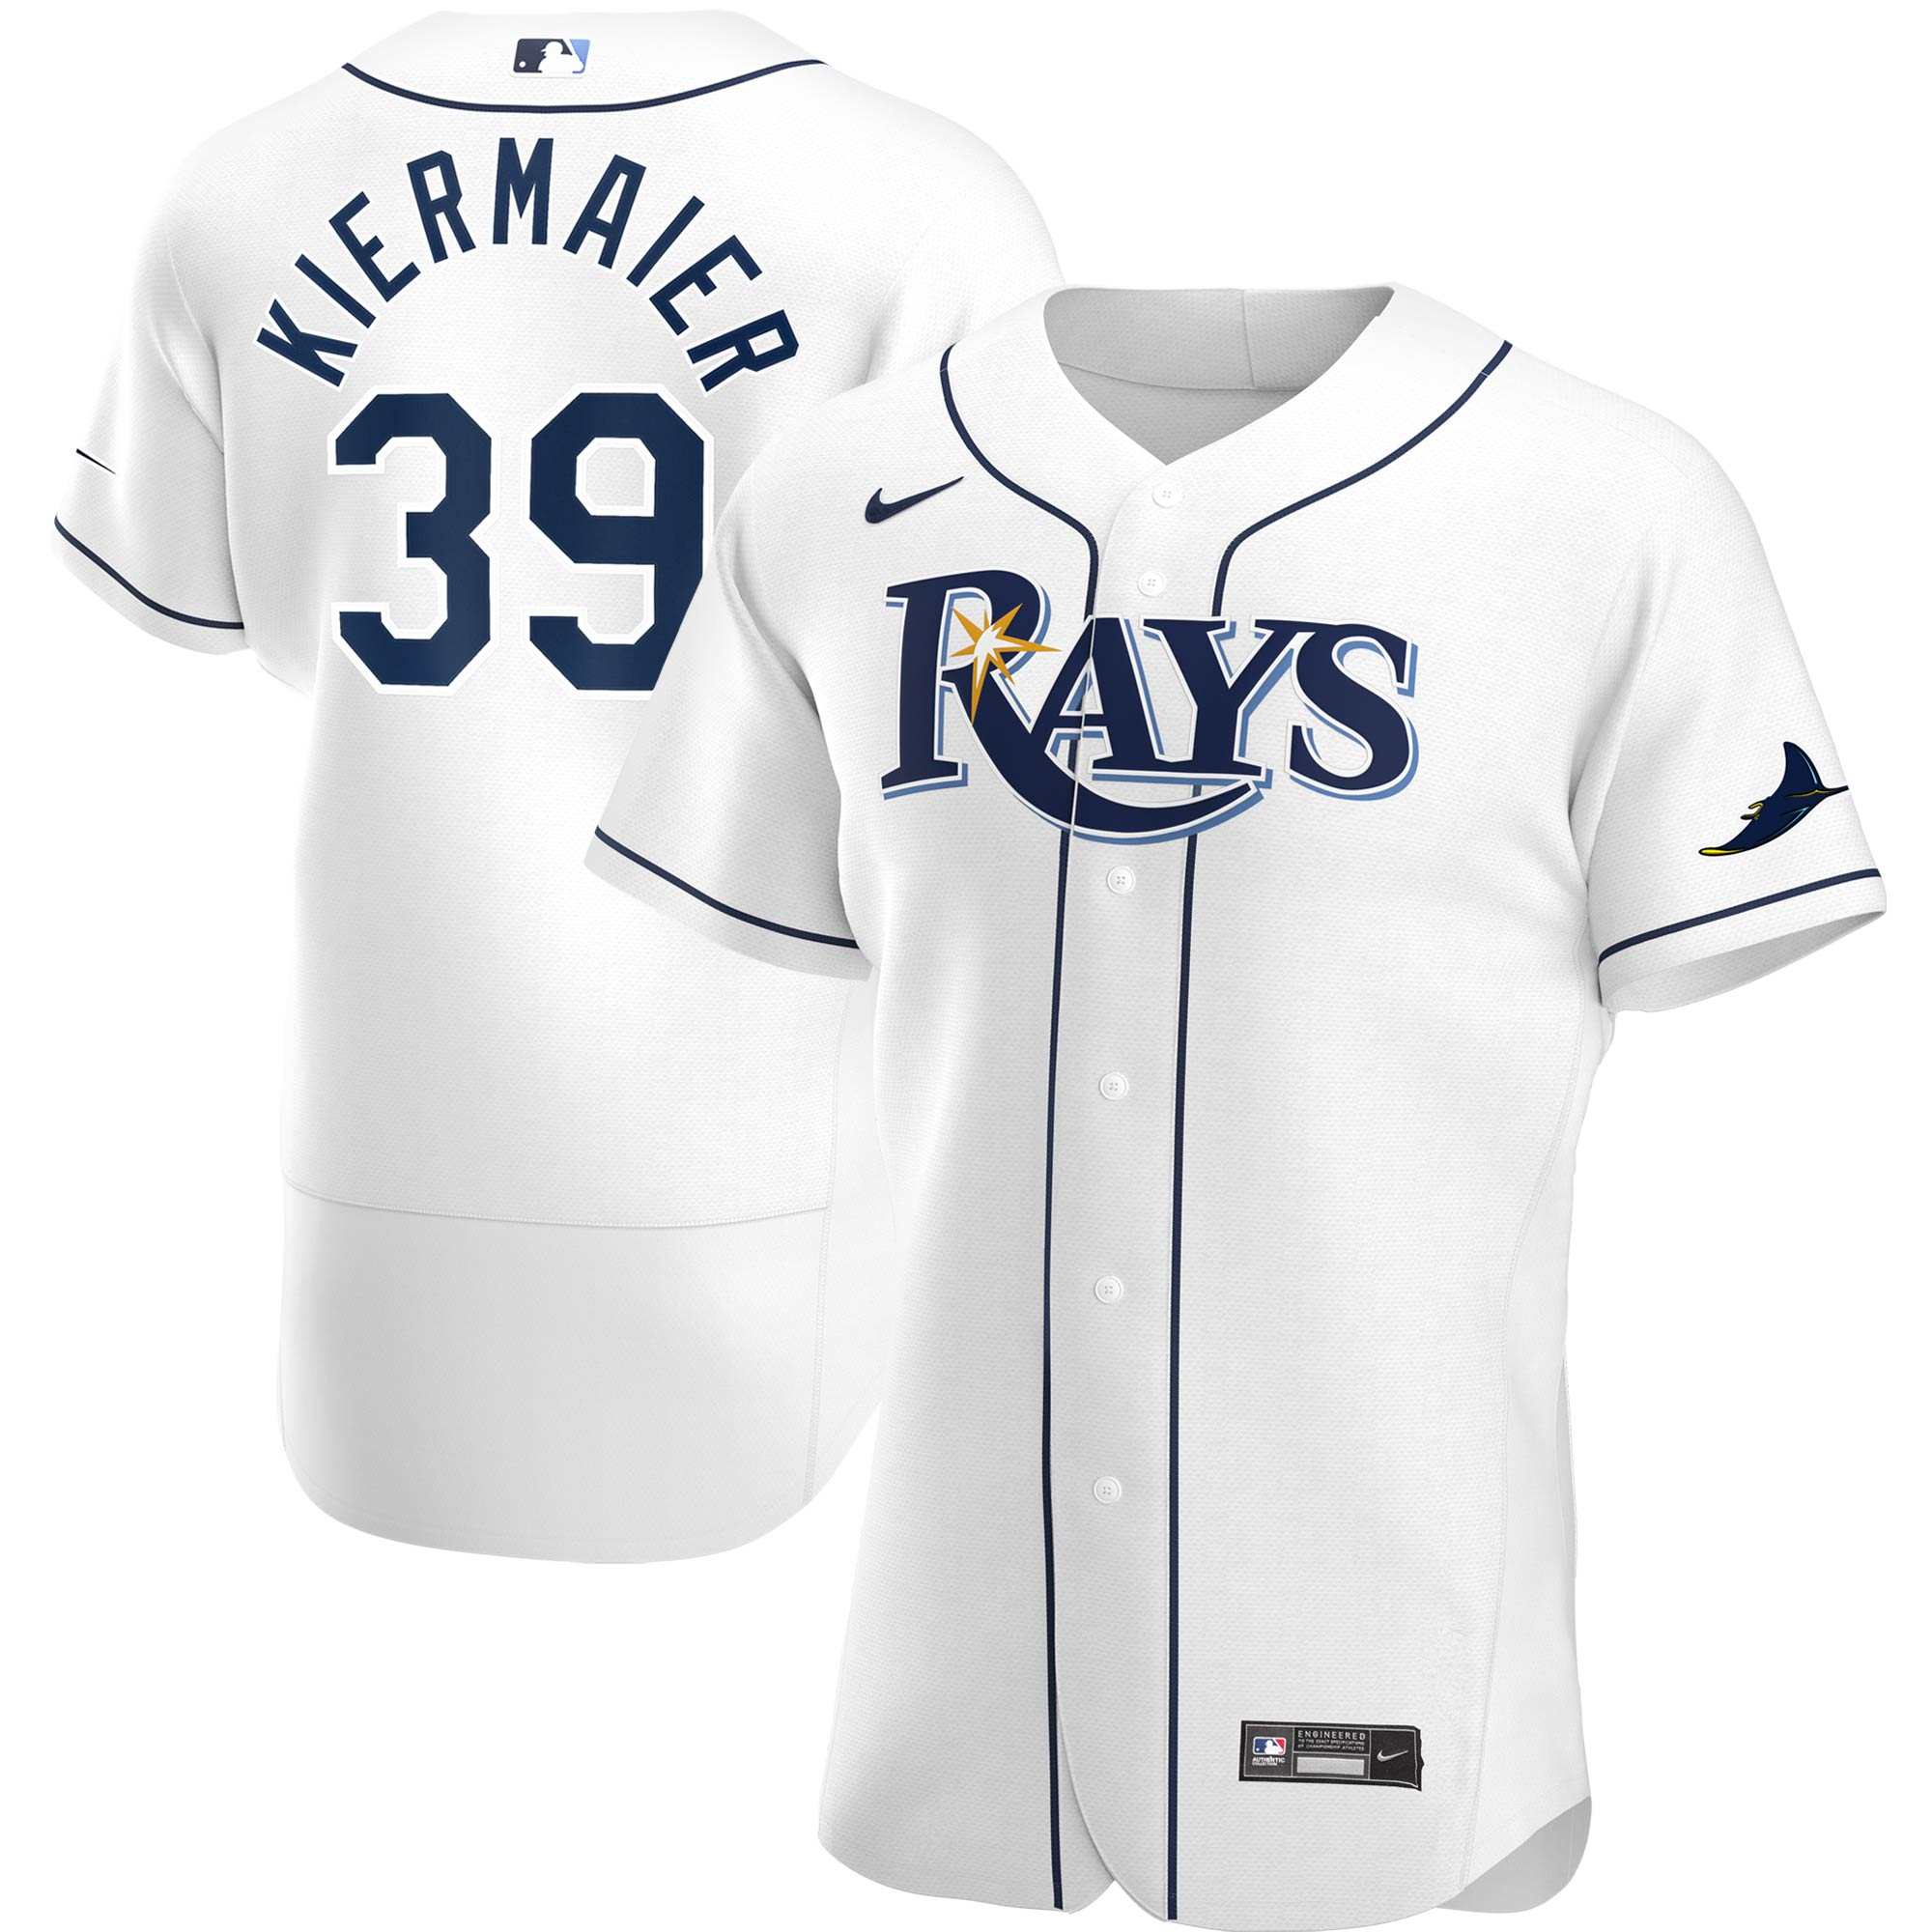 Kevin Kiermaier #39 Tampa Bay Rays Nike Home 2020 Authentic Player Jersey - White